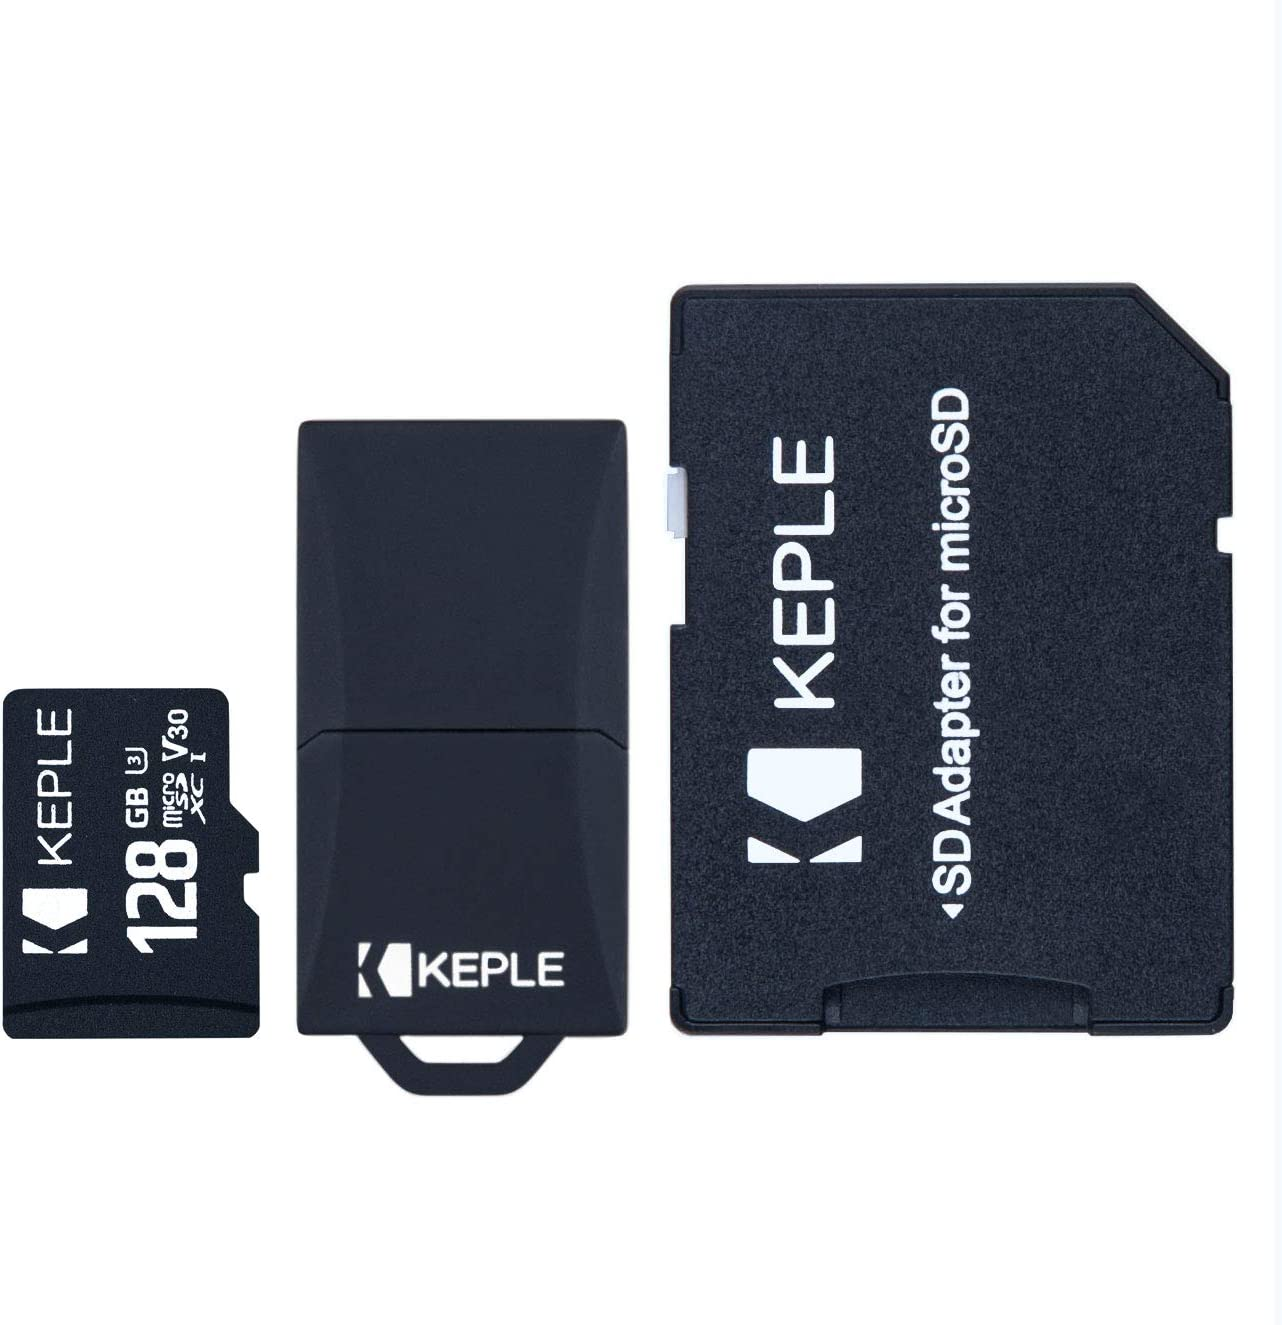 128GB microSD Memory Card Micro SD for Lenovo Tab 4, 10 Plus, 8 Plus, 7 Essential, Moto Tab/Acer Iconia One 10 B3-A20 / Huawei MediaPad T3 Tablet (10.1) Tablet | 128 GB UHS-1 U1 High Speed Class 10